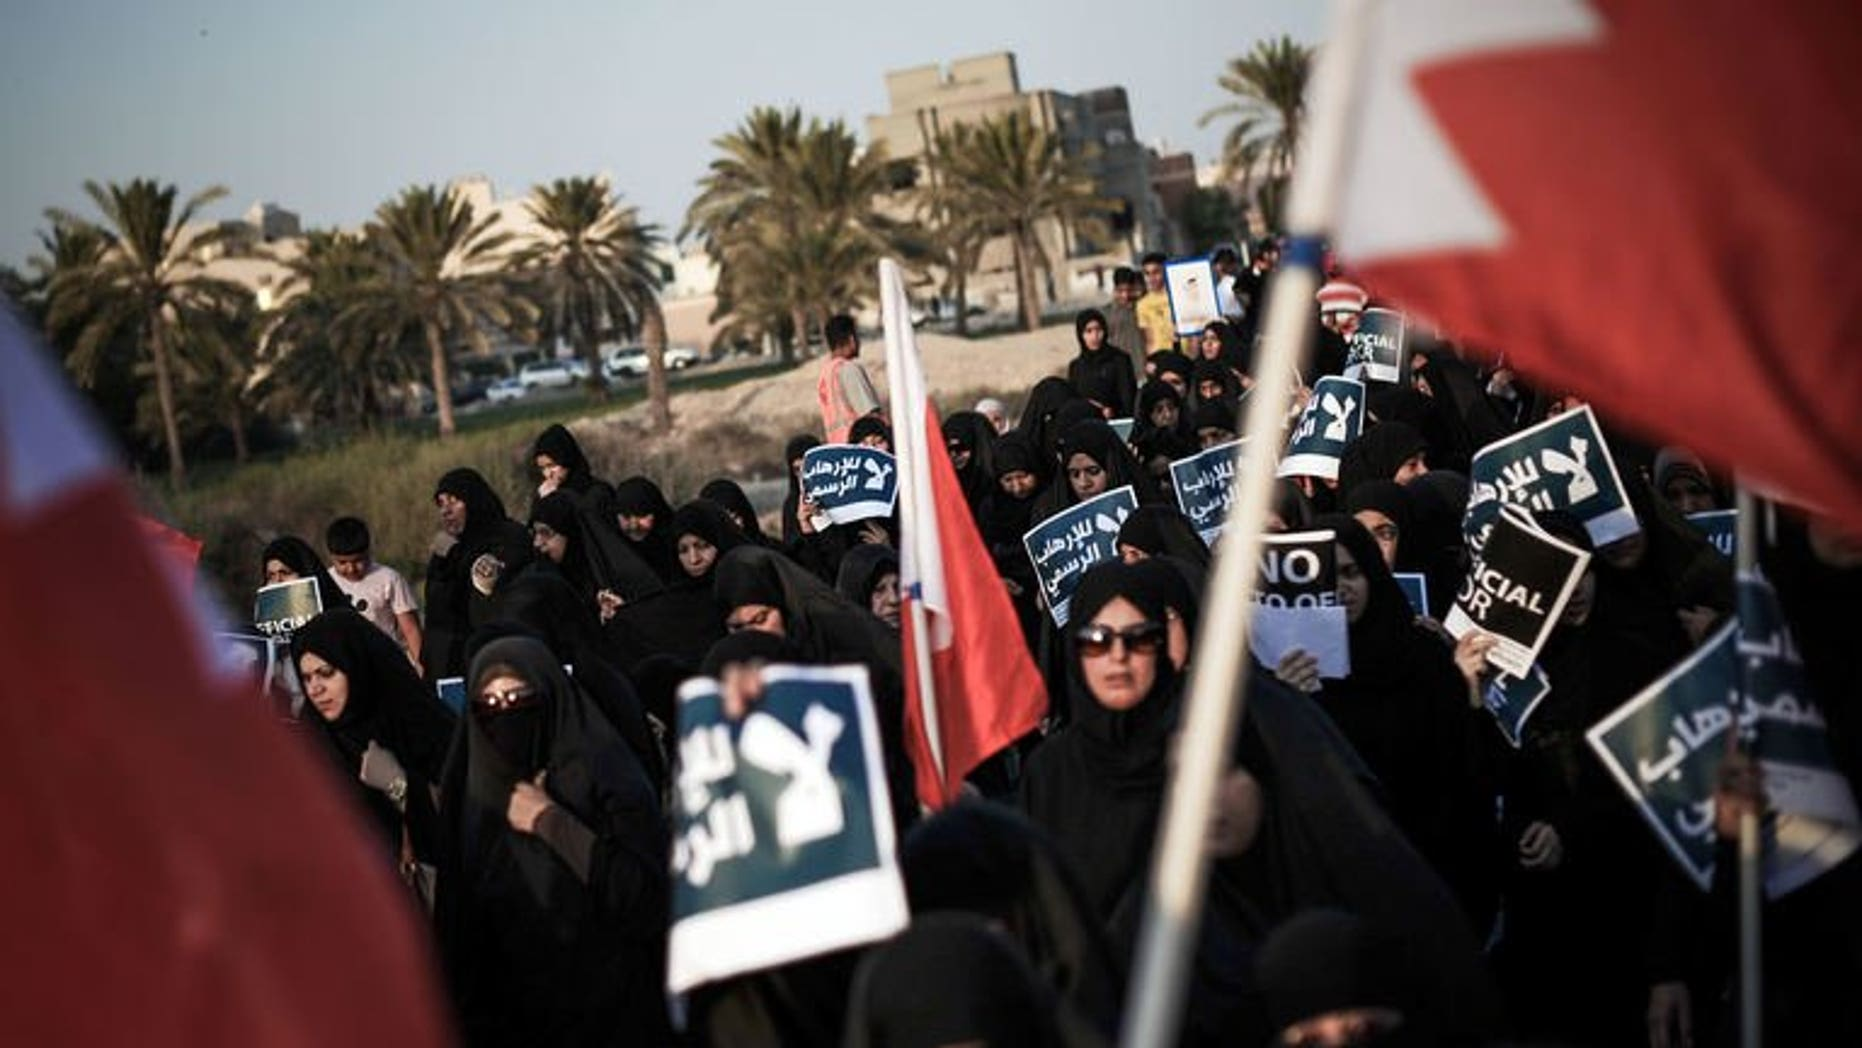 Bahraini women carry posters during an anti-government rally in the village of Abu Saiba, west of Manama, on August 23, 2013. Shiite protesters took to the streets in Bahrain Friday demanding political reforms in the Sunni-ruled Gulf kingdom, witnesses said.